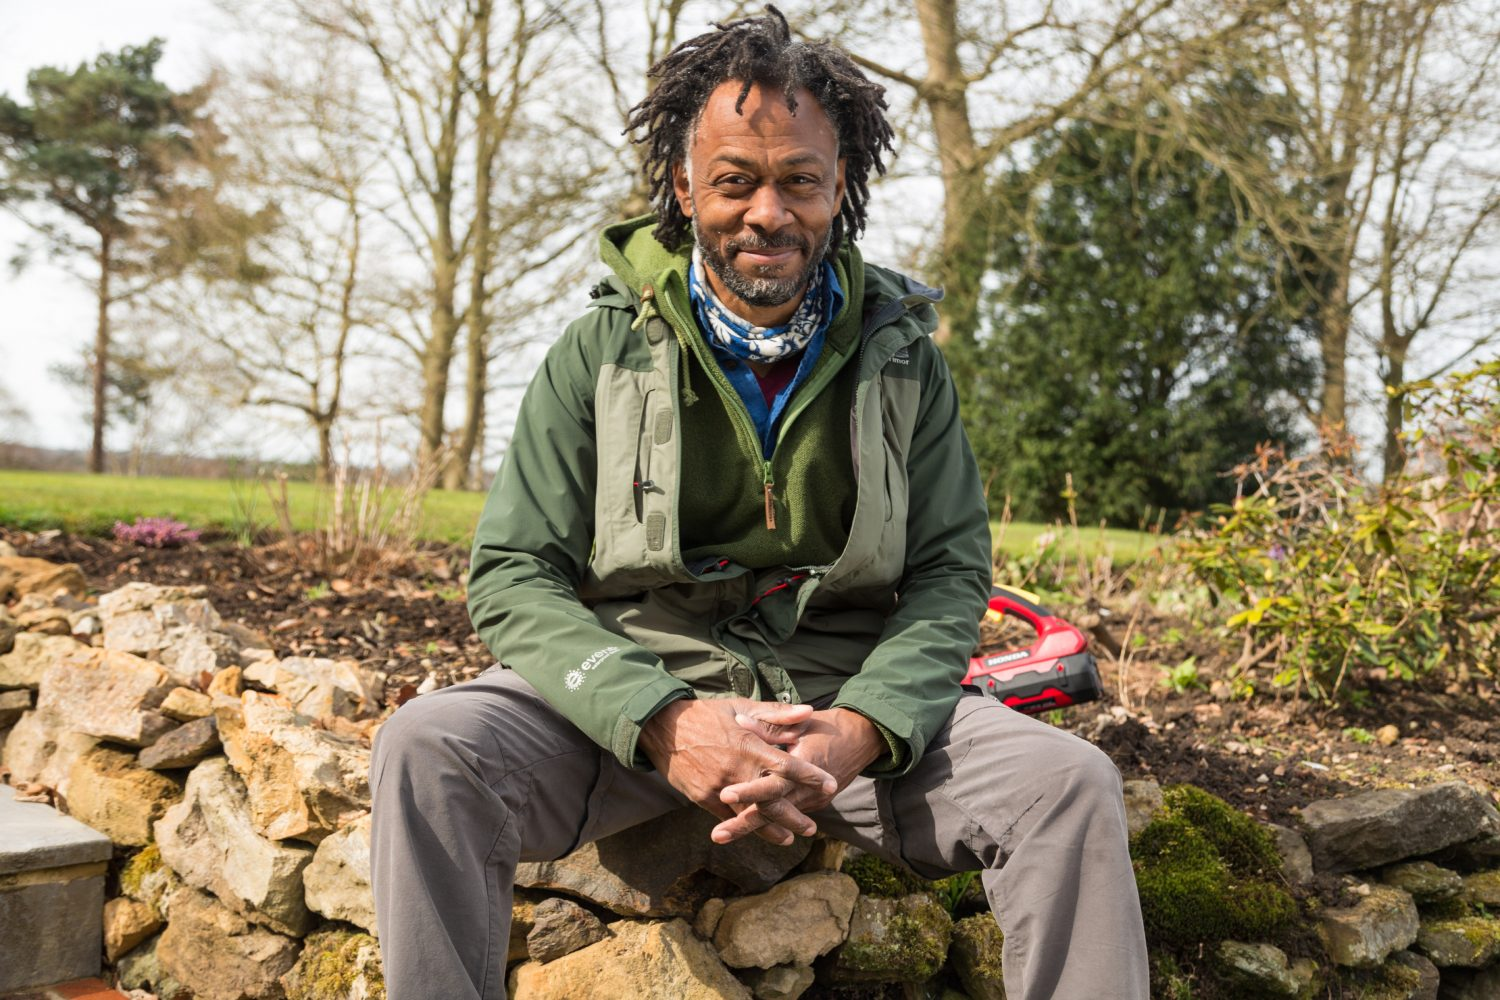 BBC presenter Danny Clarke explains what drew him into the world of horticulture